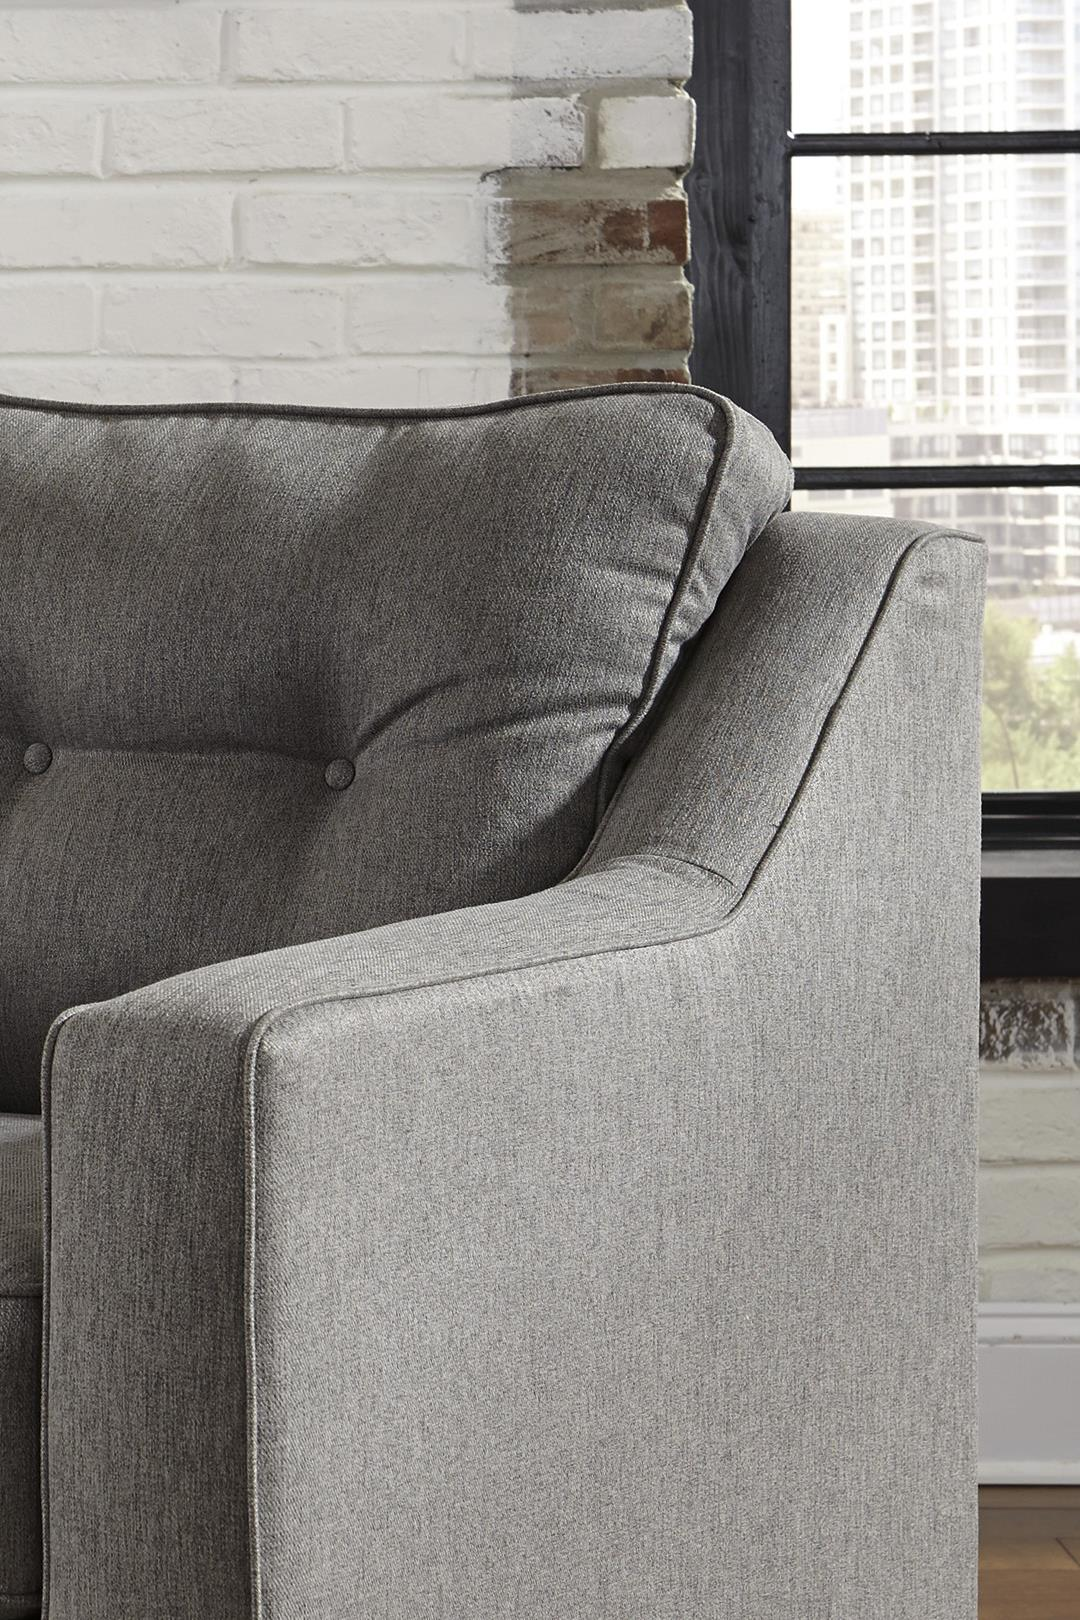 Fabulous Brindon 53901 By Benchcraft By Ashley Royal Furniture Cjindustries Chair Design For Home Cjindustriesco